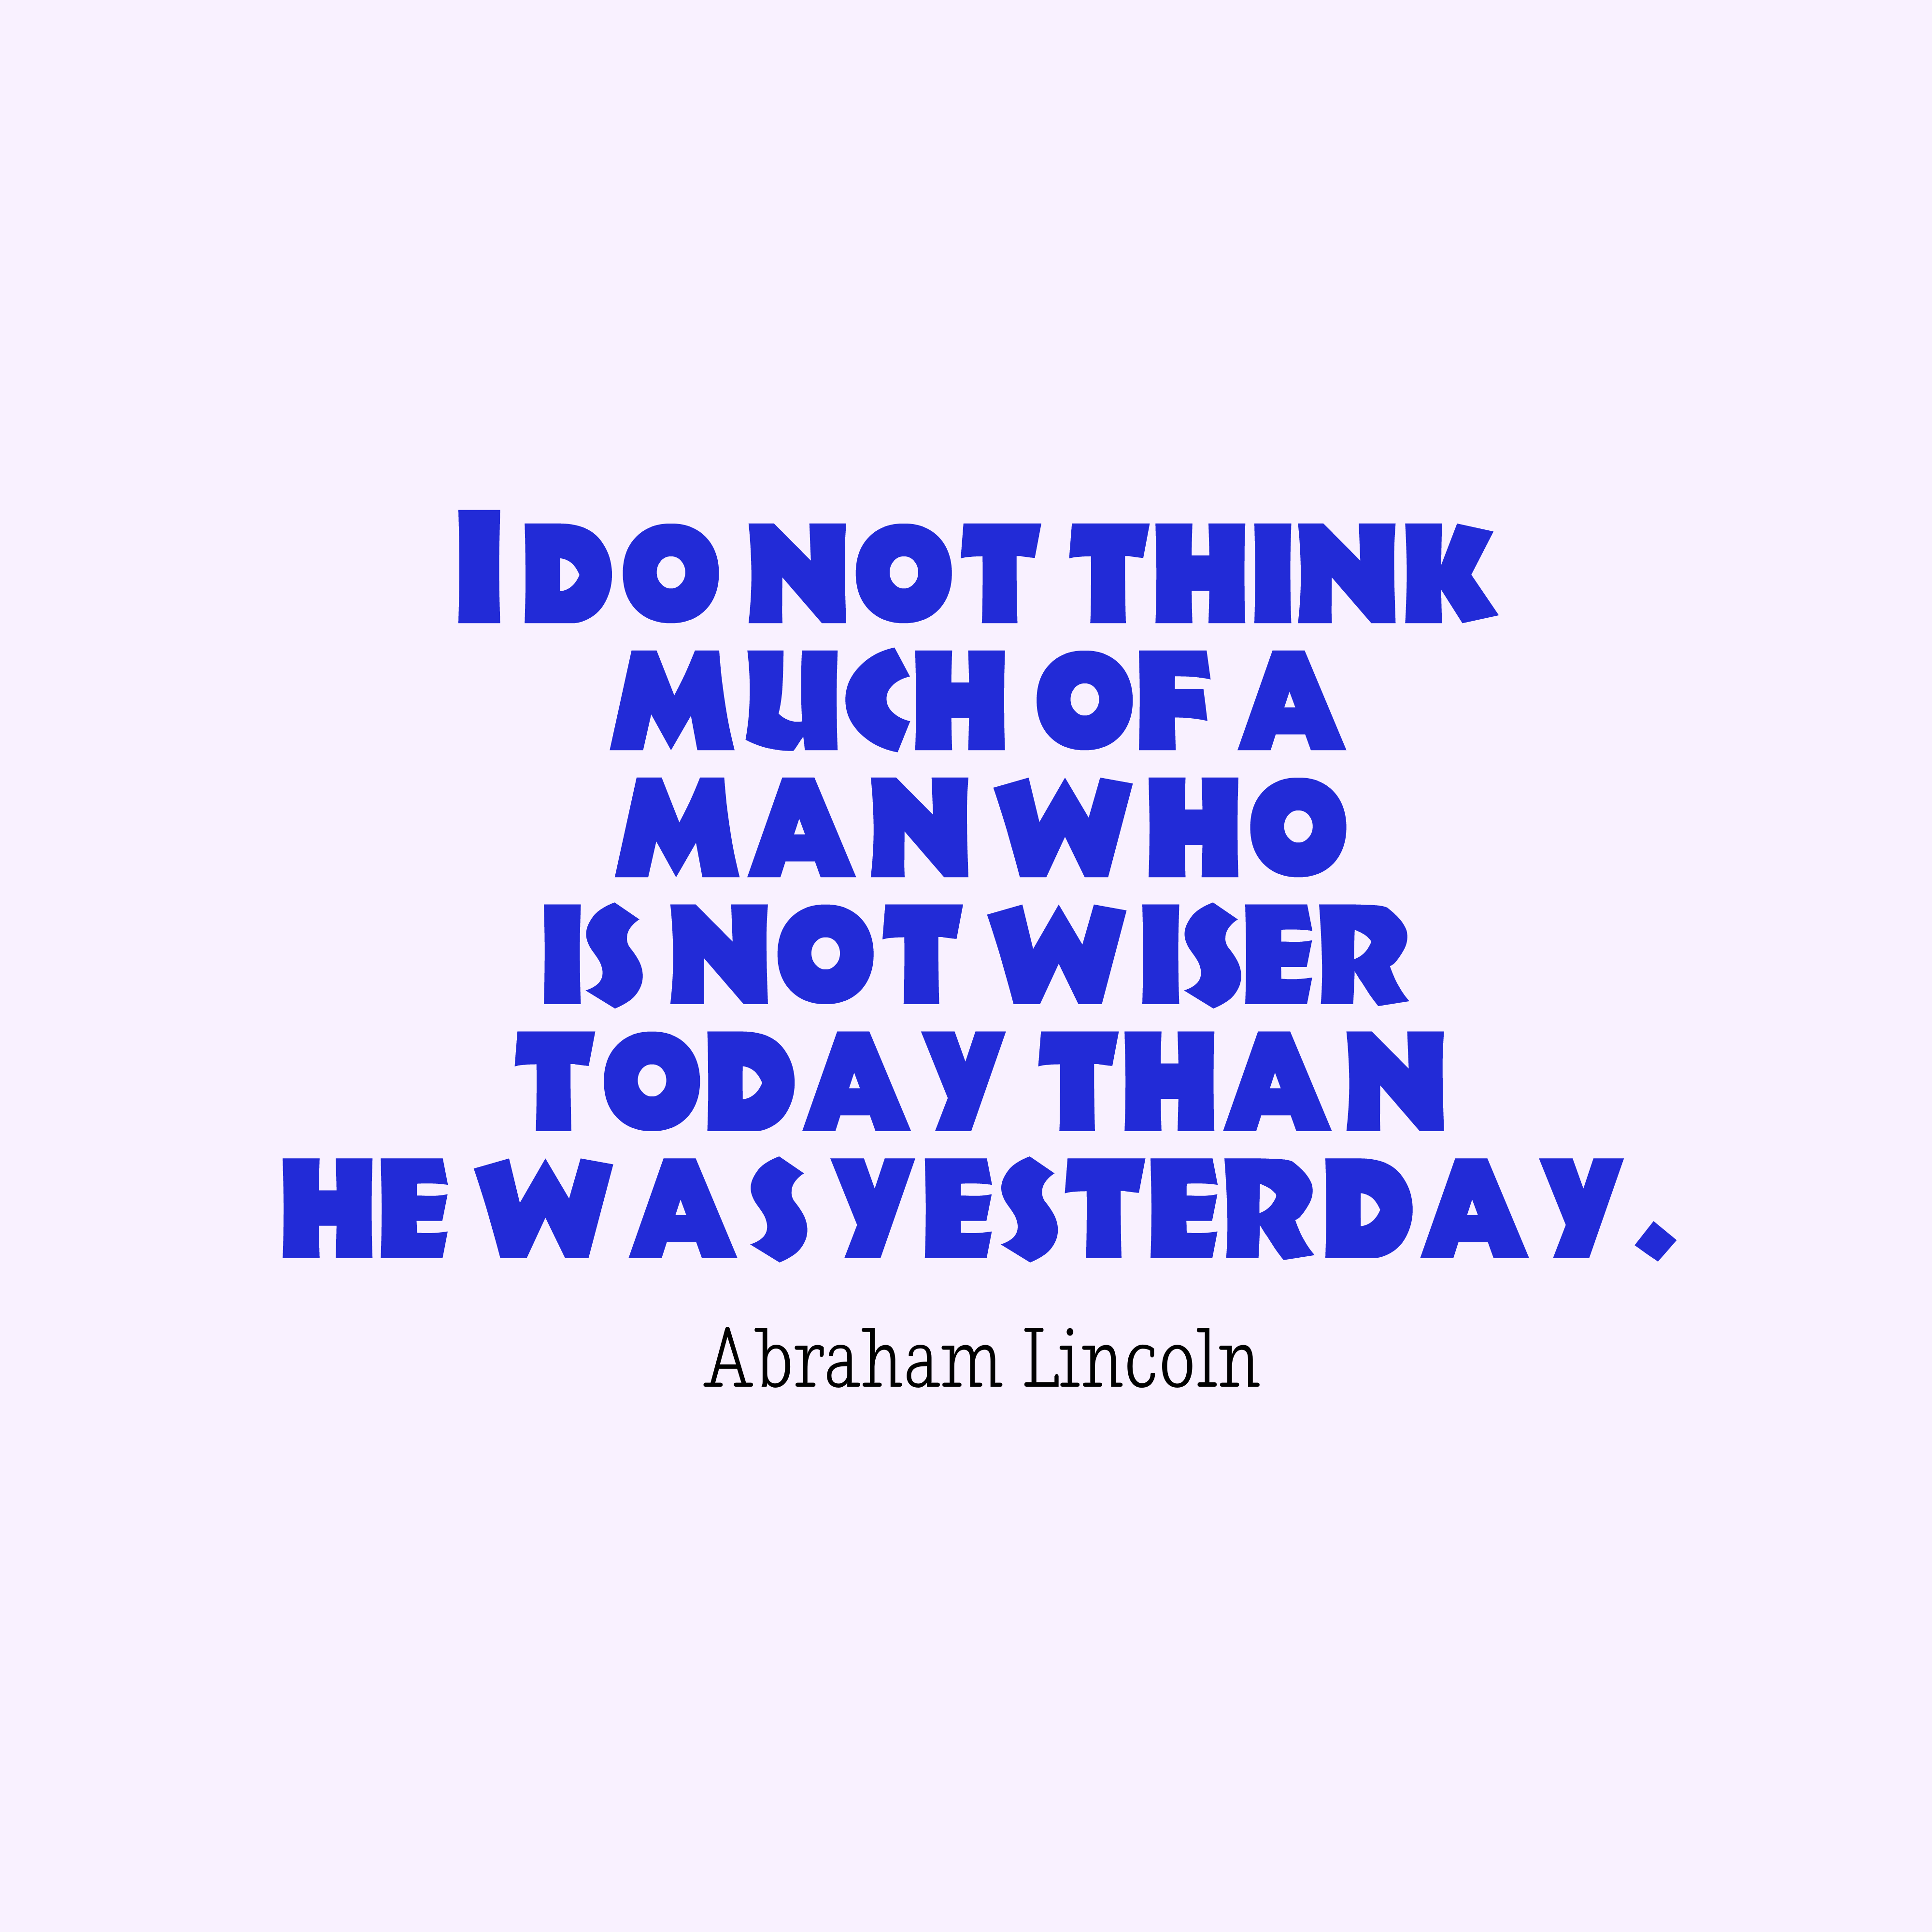 Quotes image of I do not think much of a man who is not wiser today than he was yesterday.